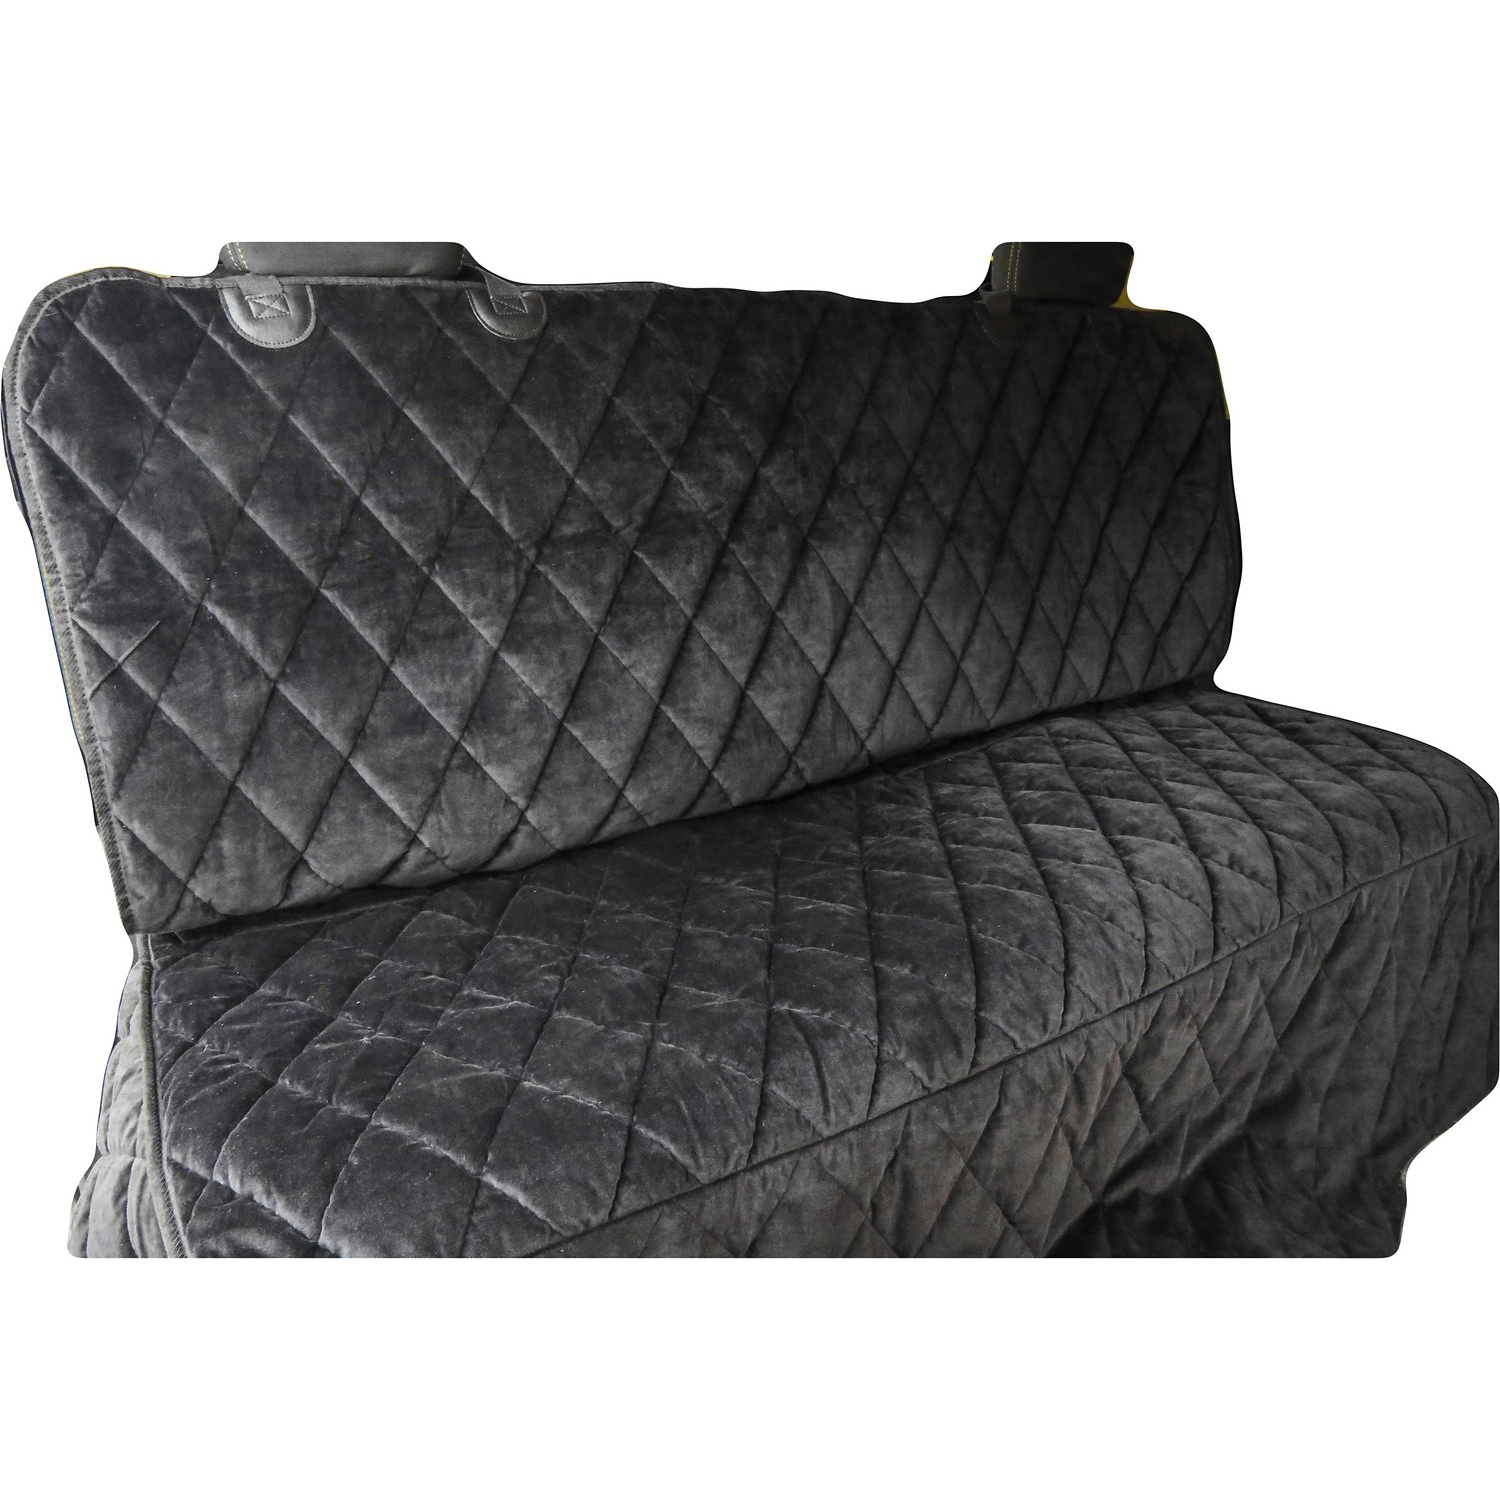 plush-paws-quilted-velvet-seat-cover